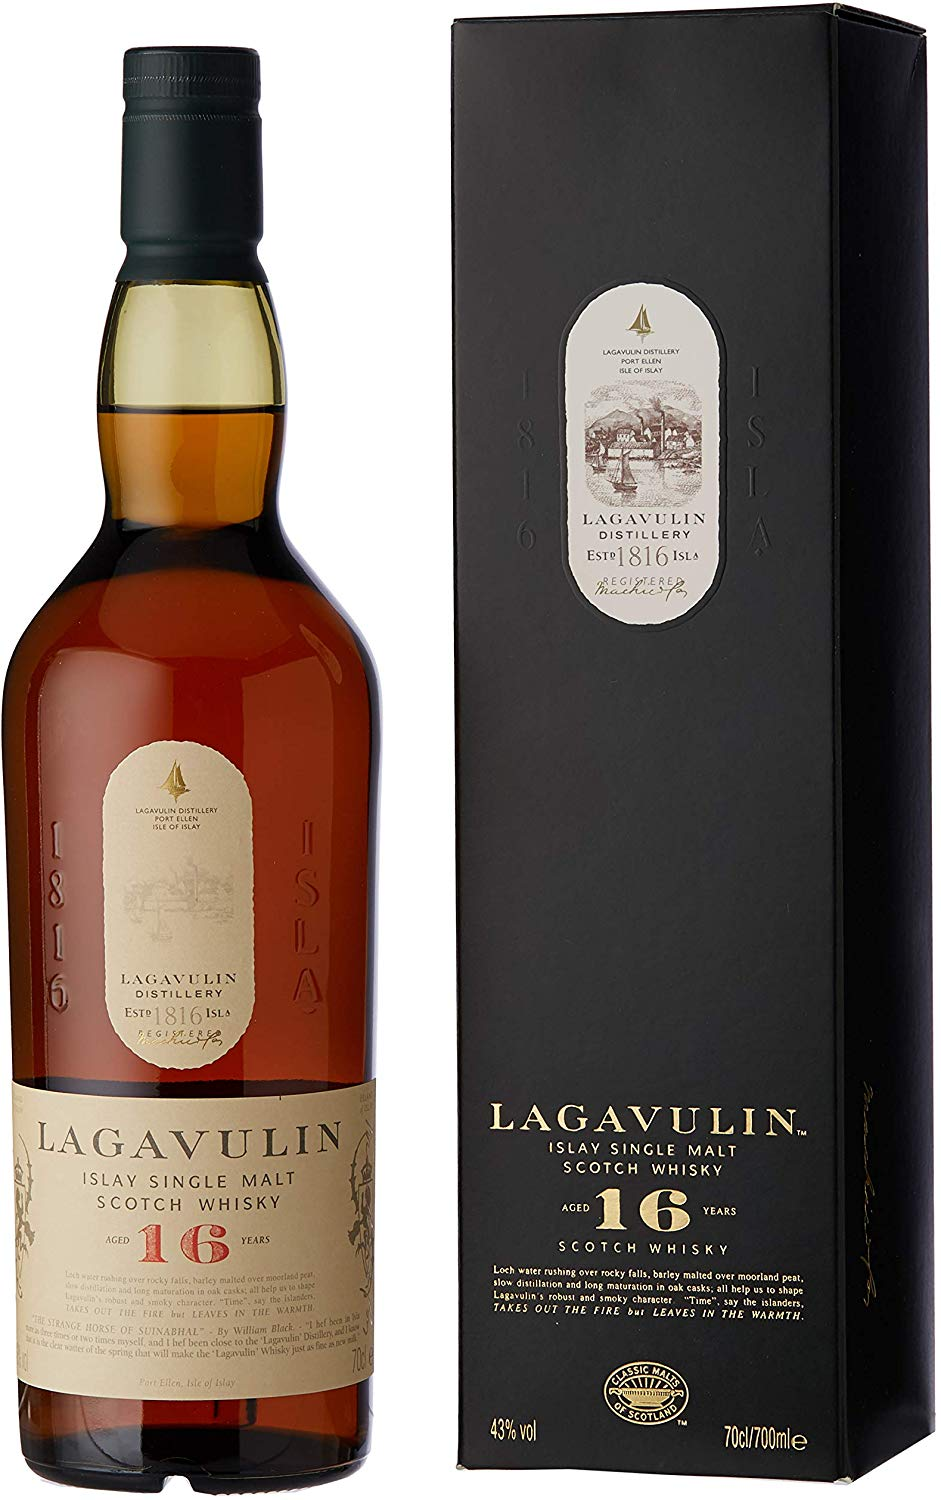 Lagavulin 16 Year Old Single Malt Scotch Whisky – 70cl for £43.99 at Amazon